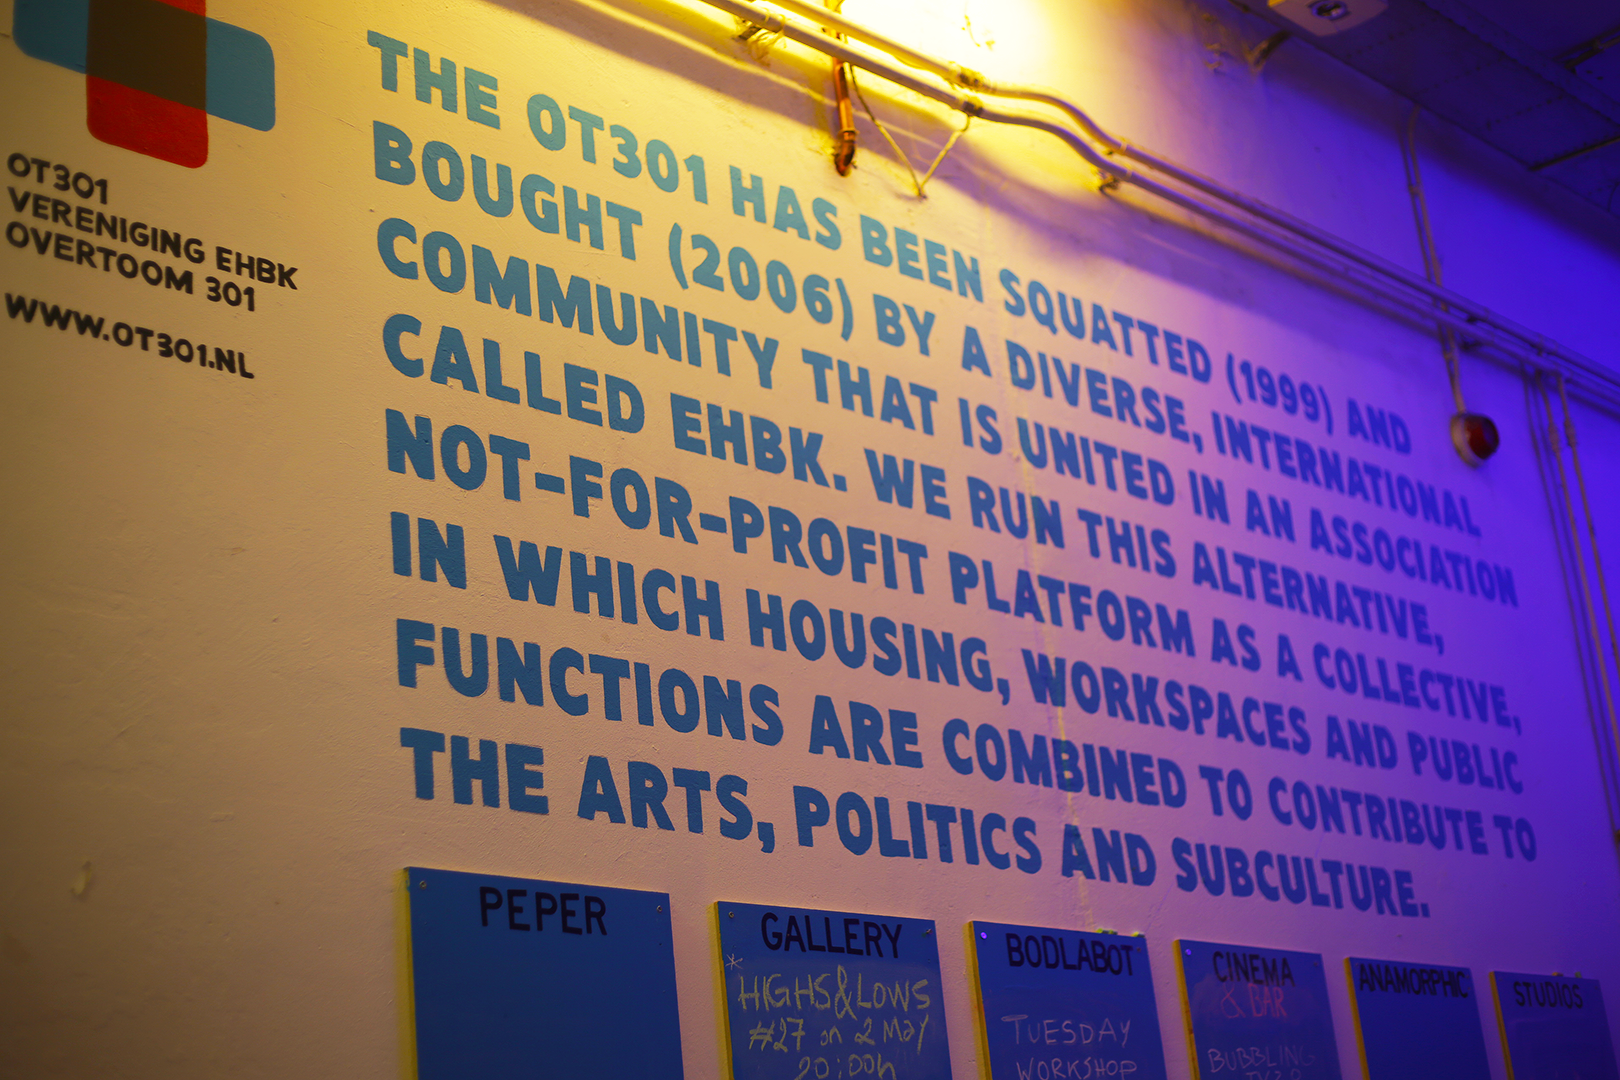 The history and values of OT301 are displayed on the entrance wall of the building along with the weekly events